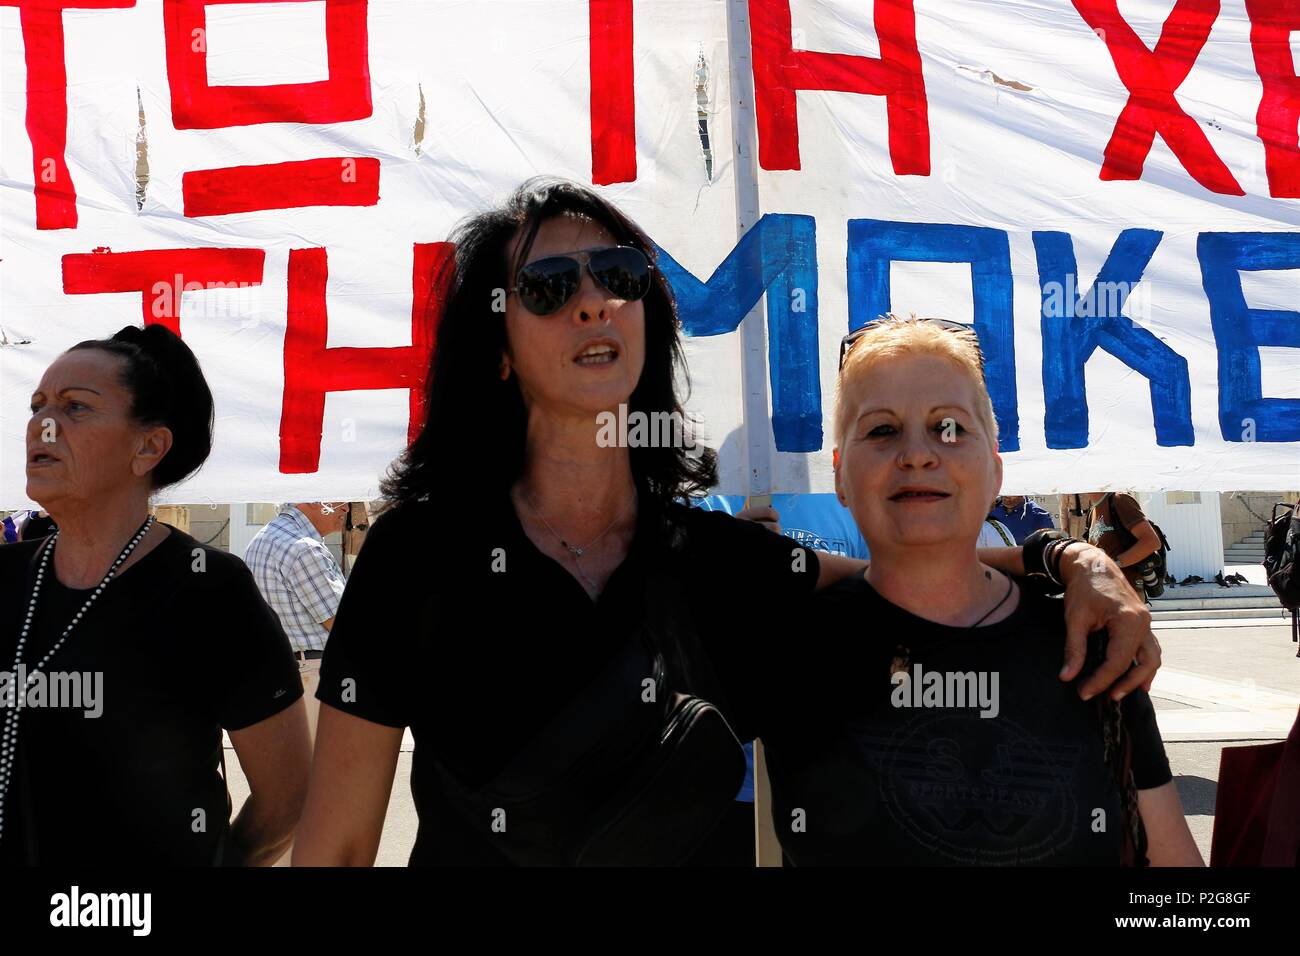 Athens Greece 15th June 2018 Two Women Are Seen Standing In